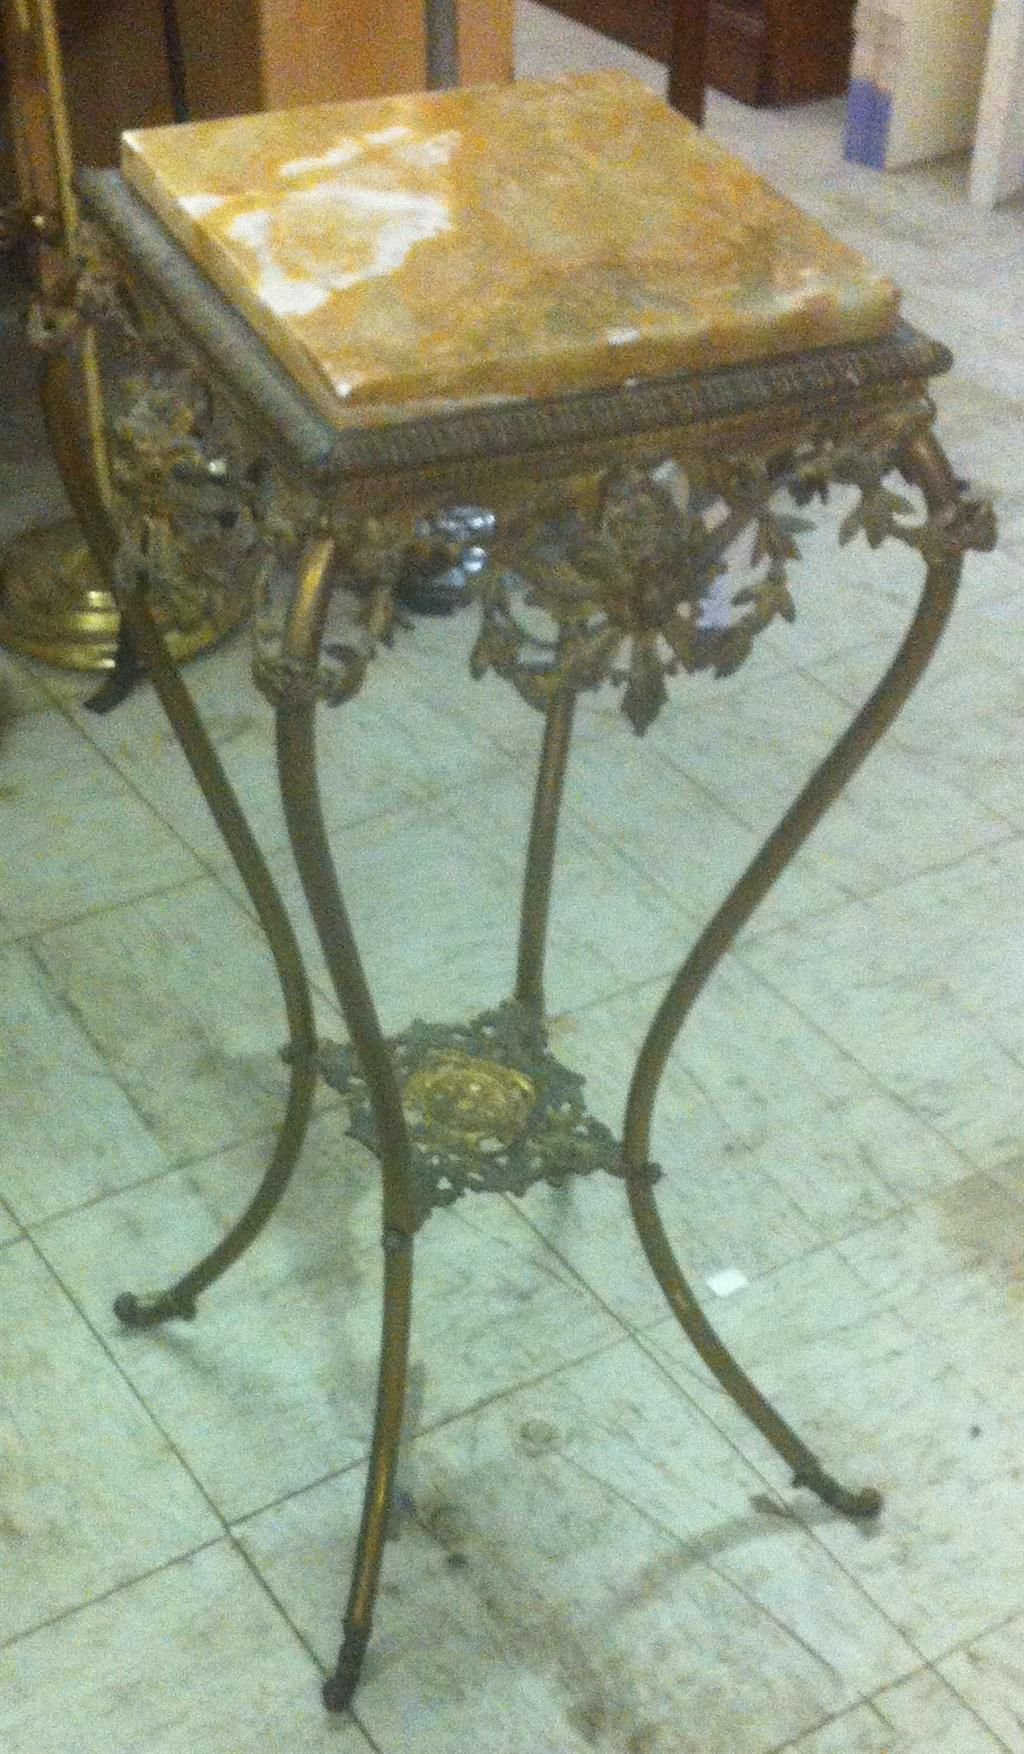 Auction company 751 walnut victorian marble top parlor table ca 1870 - Antique Brass Fern Stand W Marble Top